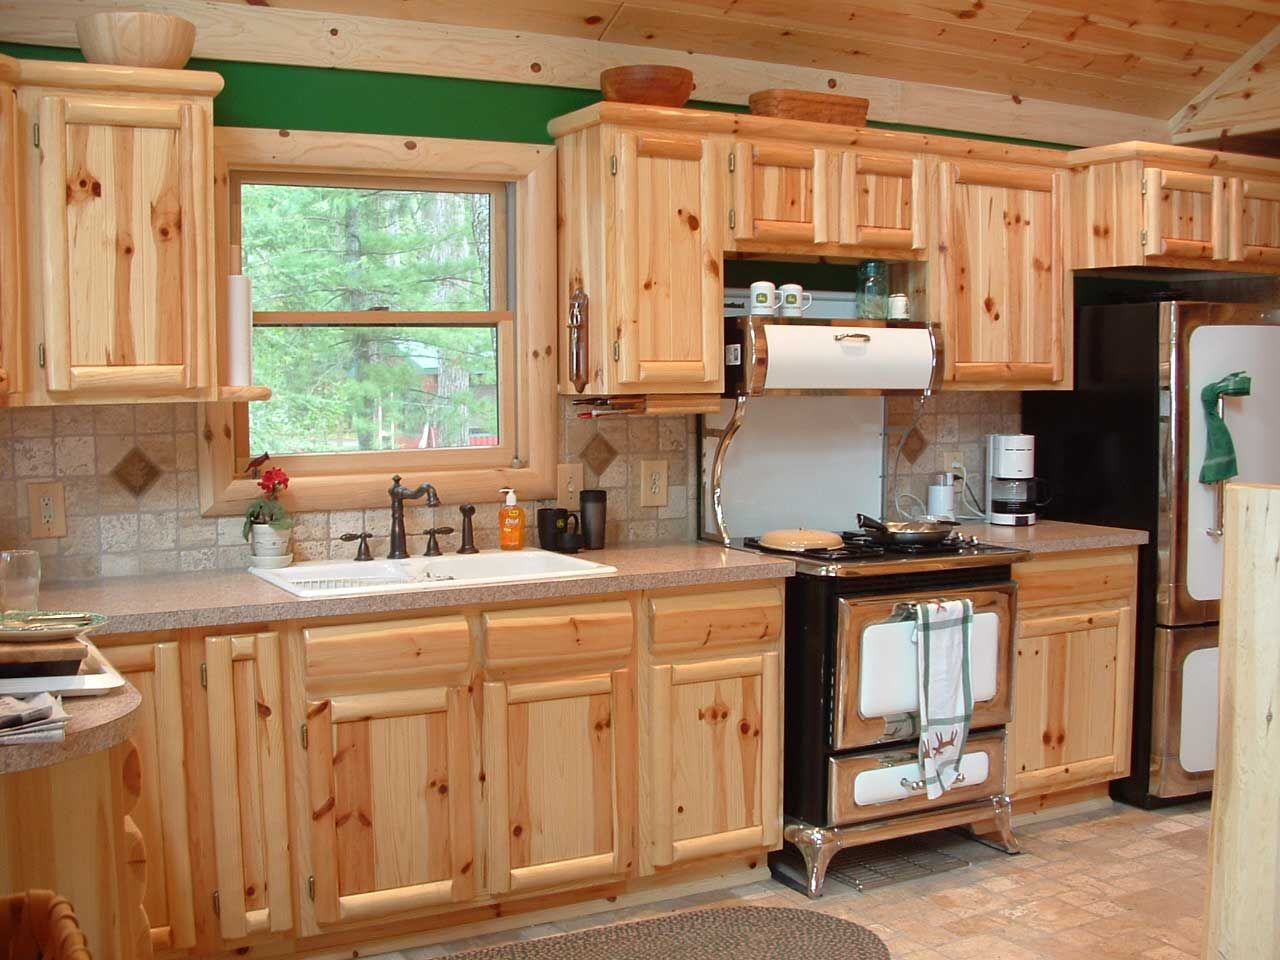 Best Kitchen Gallery: Love This Kitchen The Oven And Refrigerator Add To Its Uniqueness of Pine Kitchen Cabinets For Sale on cal-ite.com